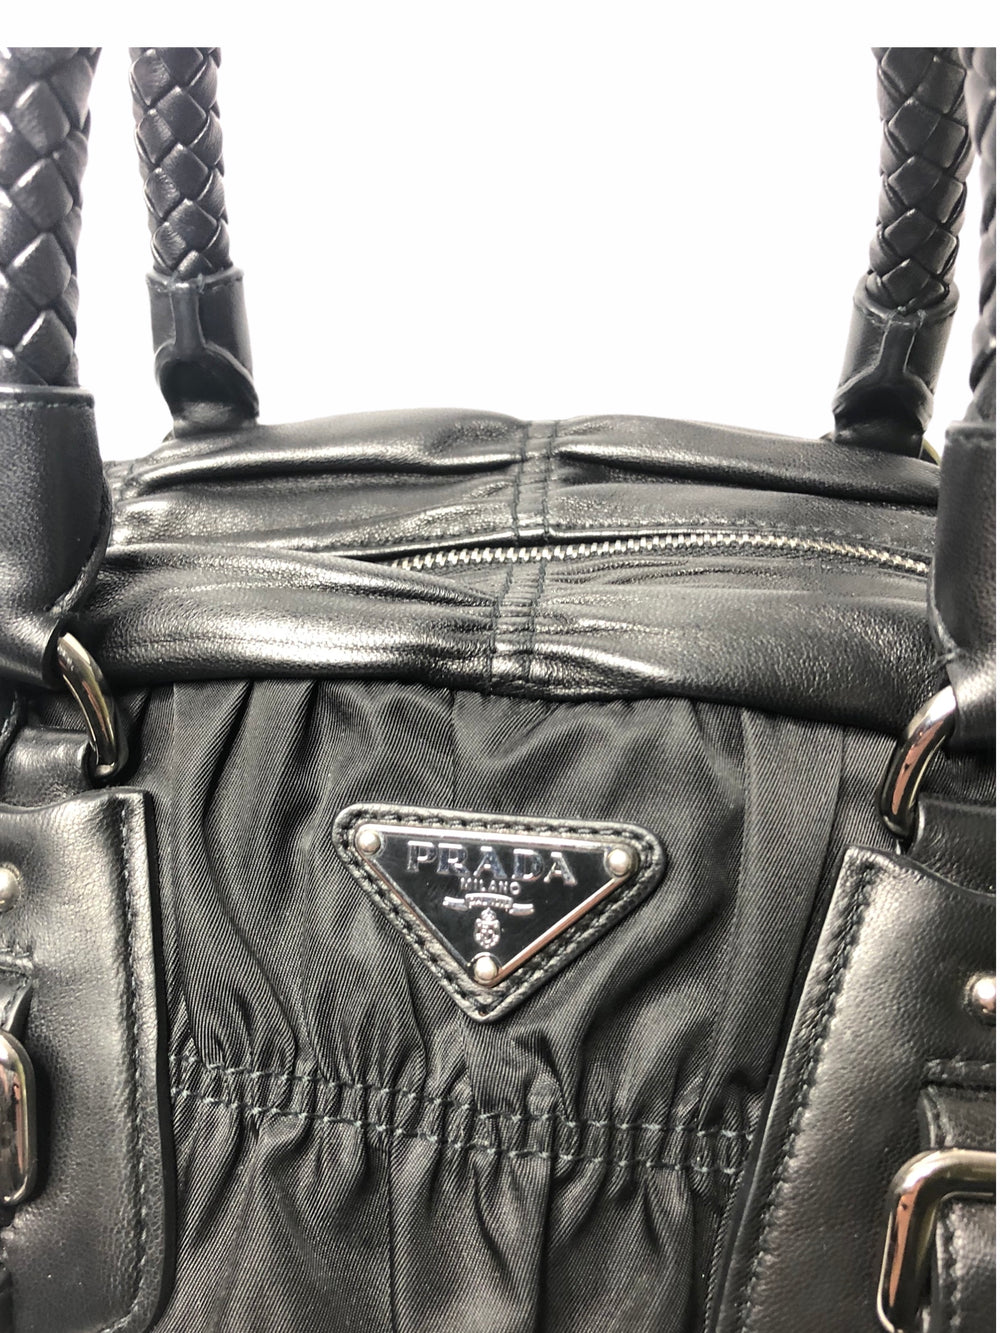 Prada Black Ruched Leather & Nylon Tote - As Seen on Instagram